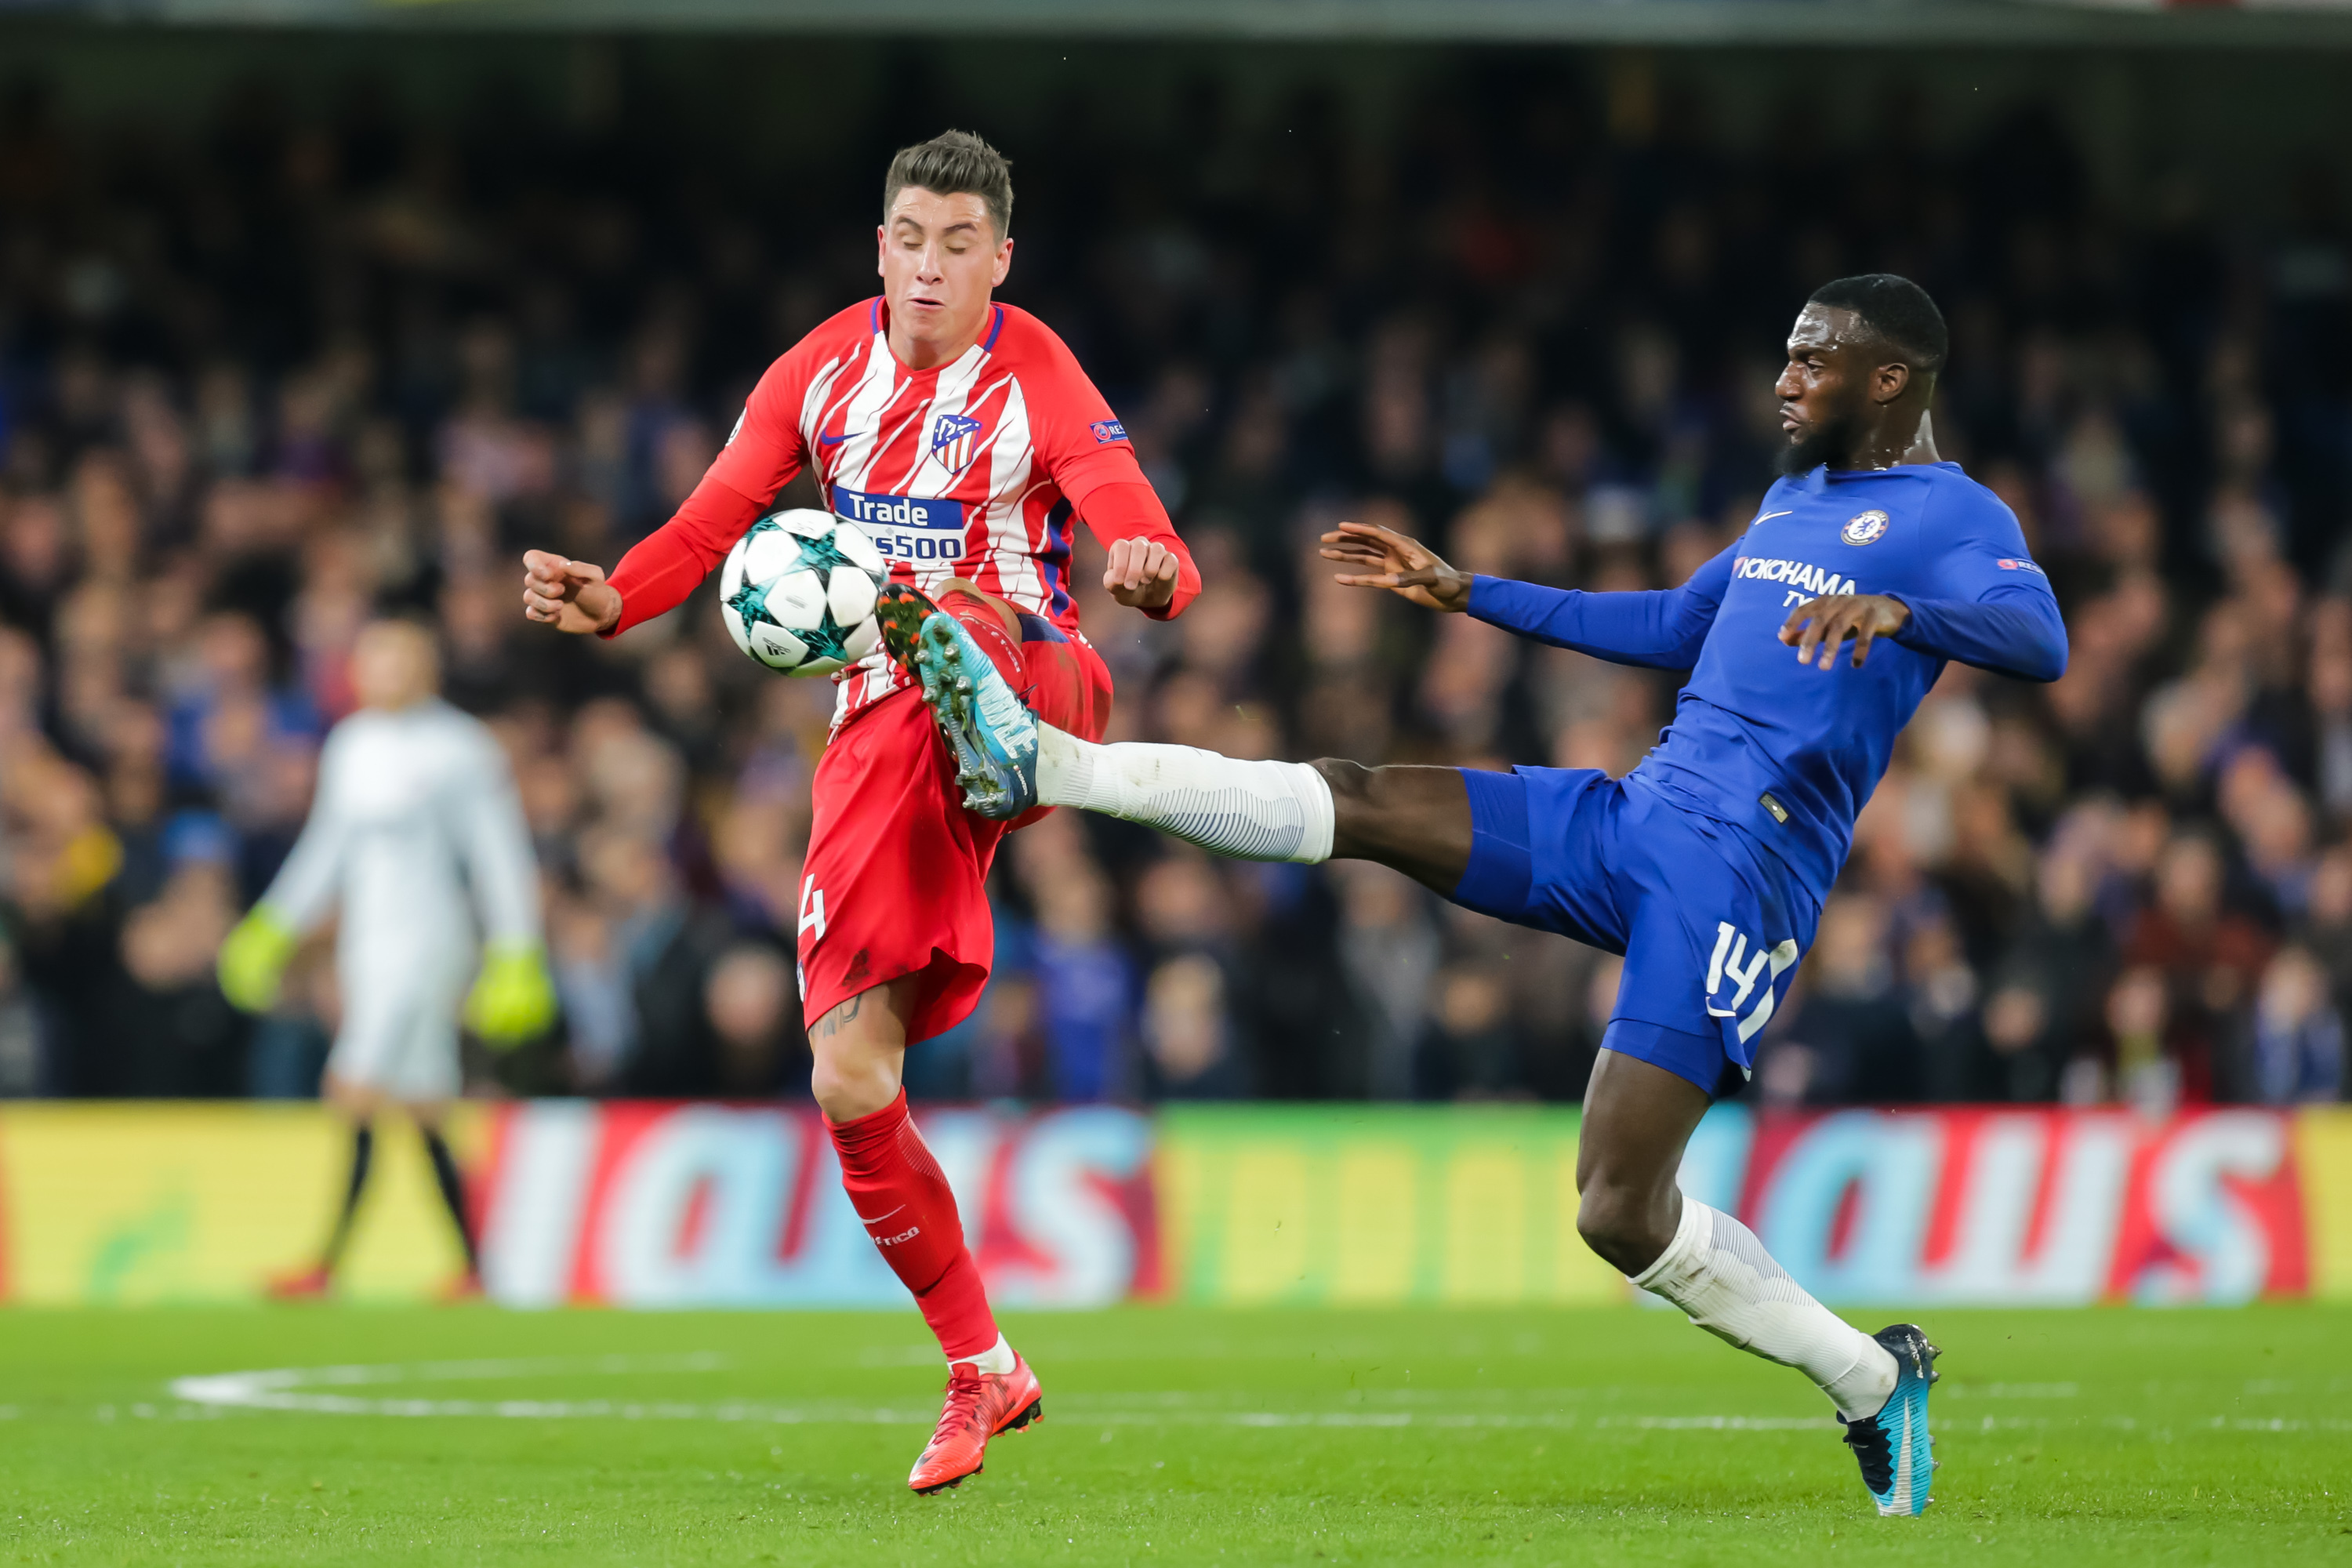 Chelsea finish second in Group C after draw with Atletico